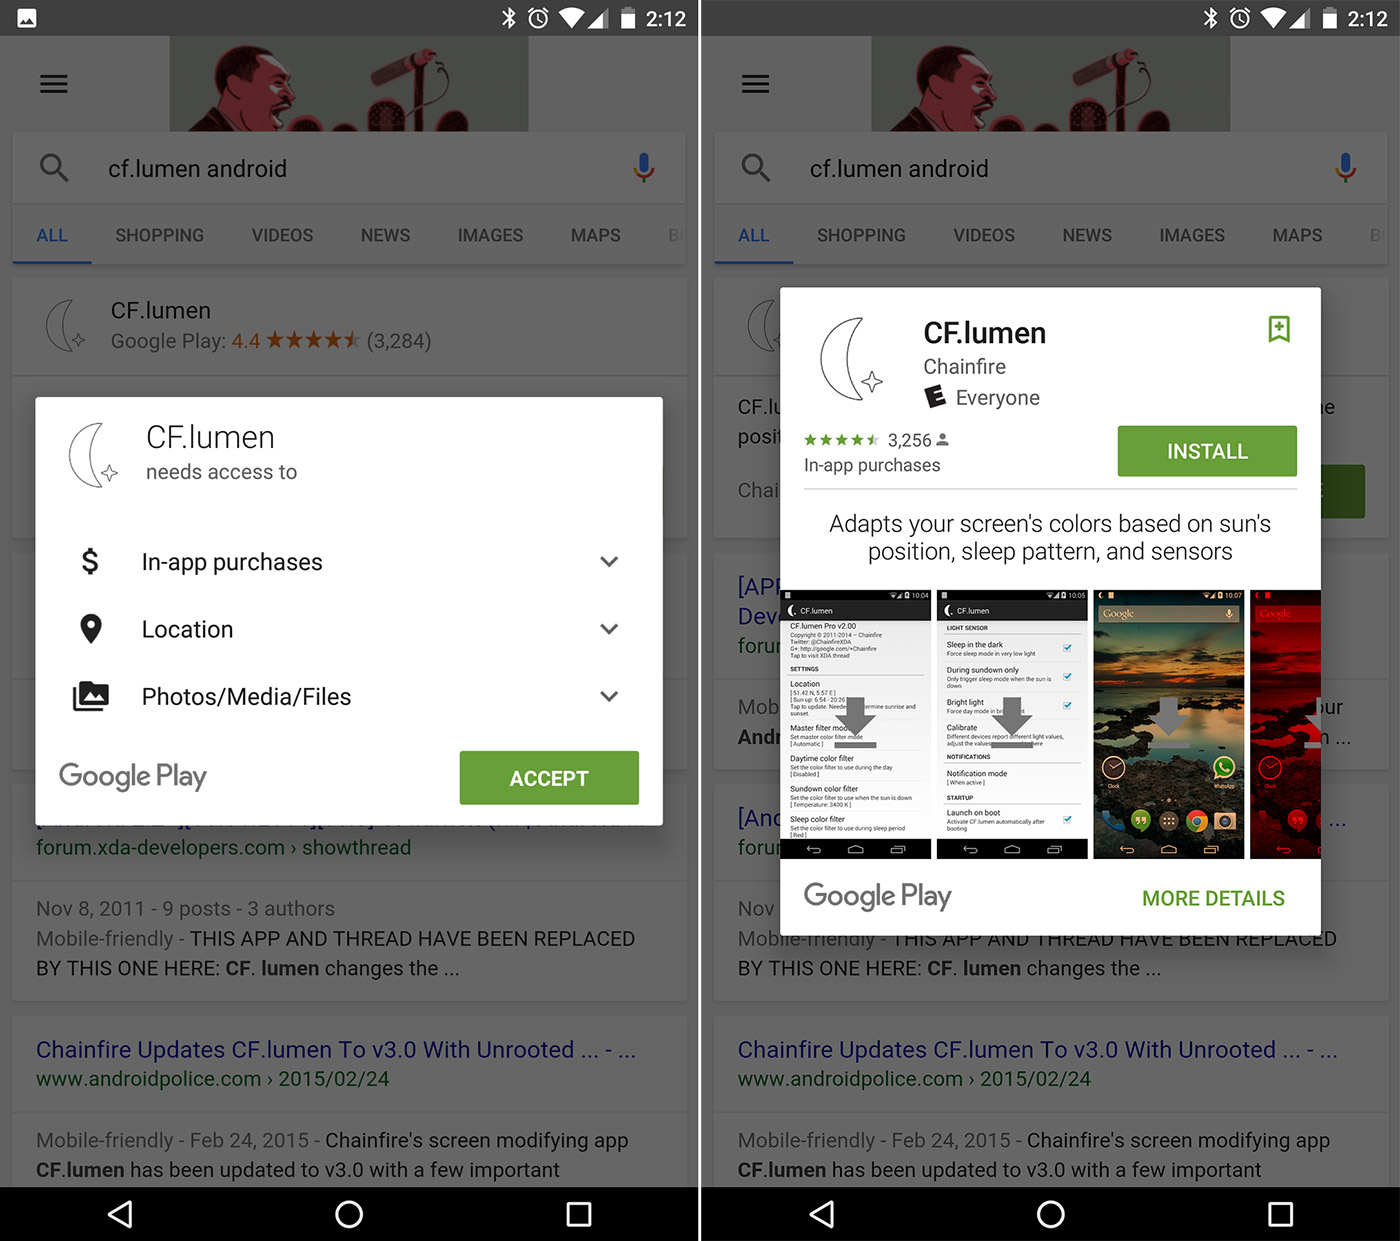 Android users will be able to install apps directly from search